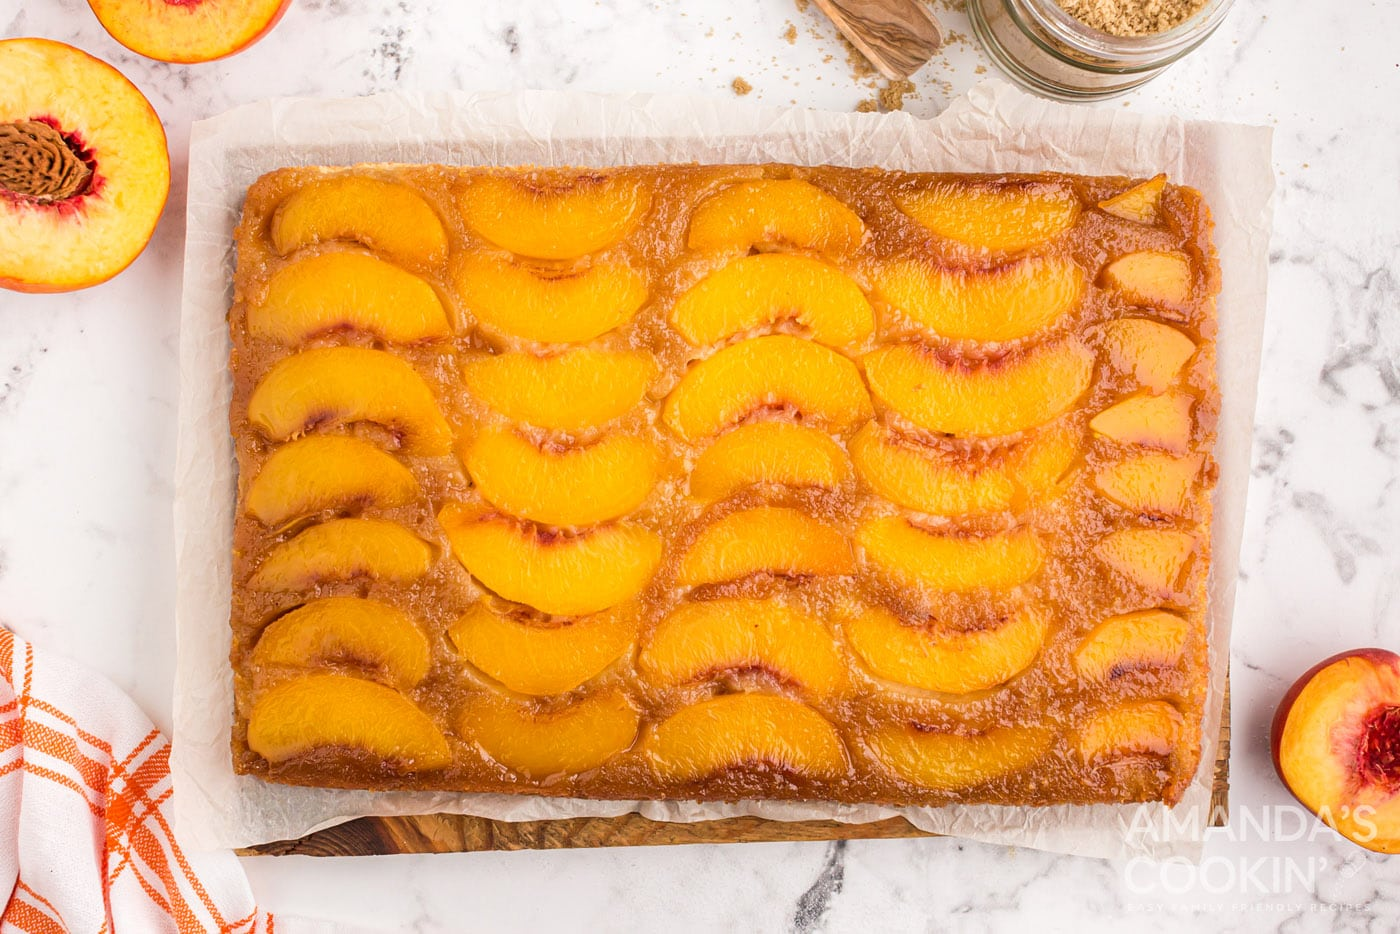 baked peach upside down cake in a glass dish